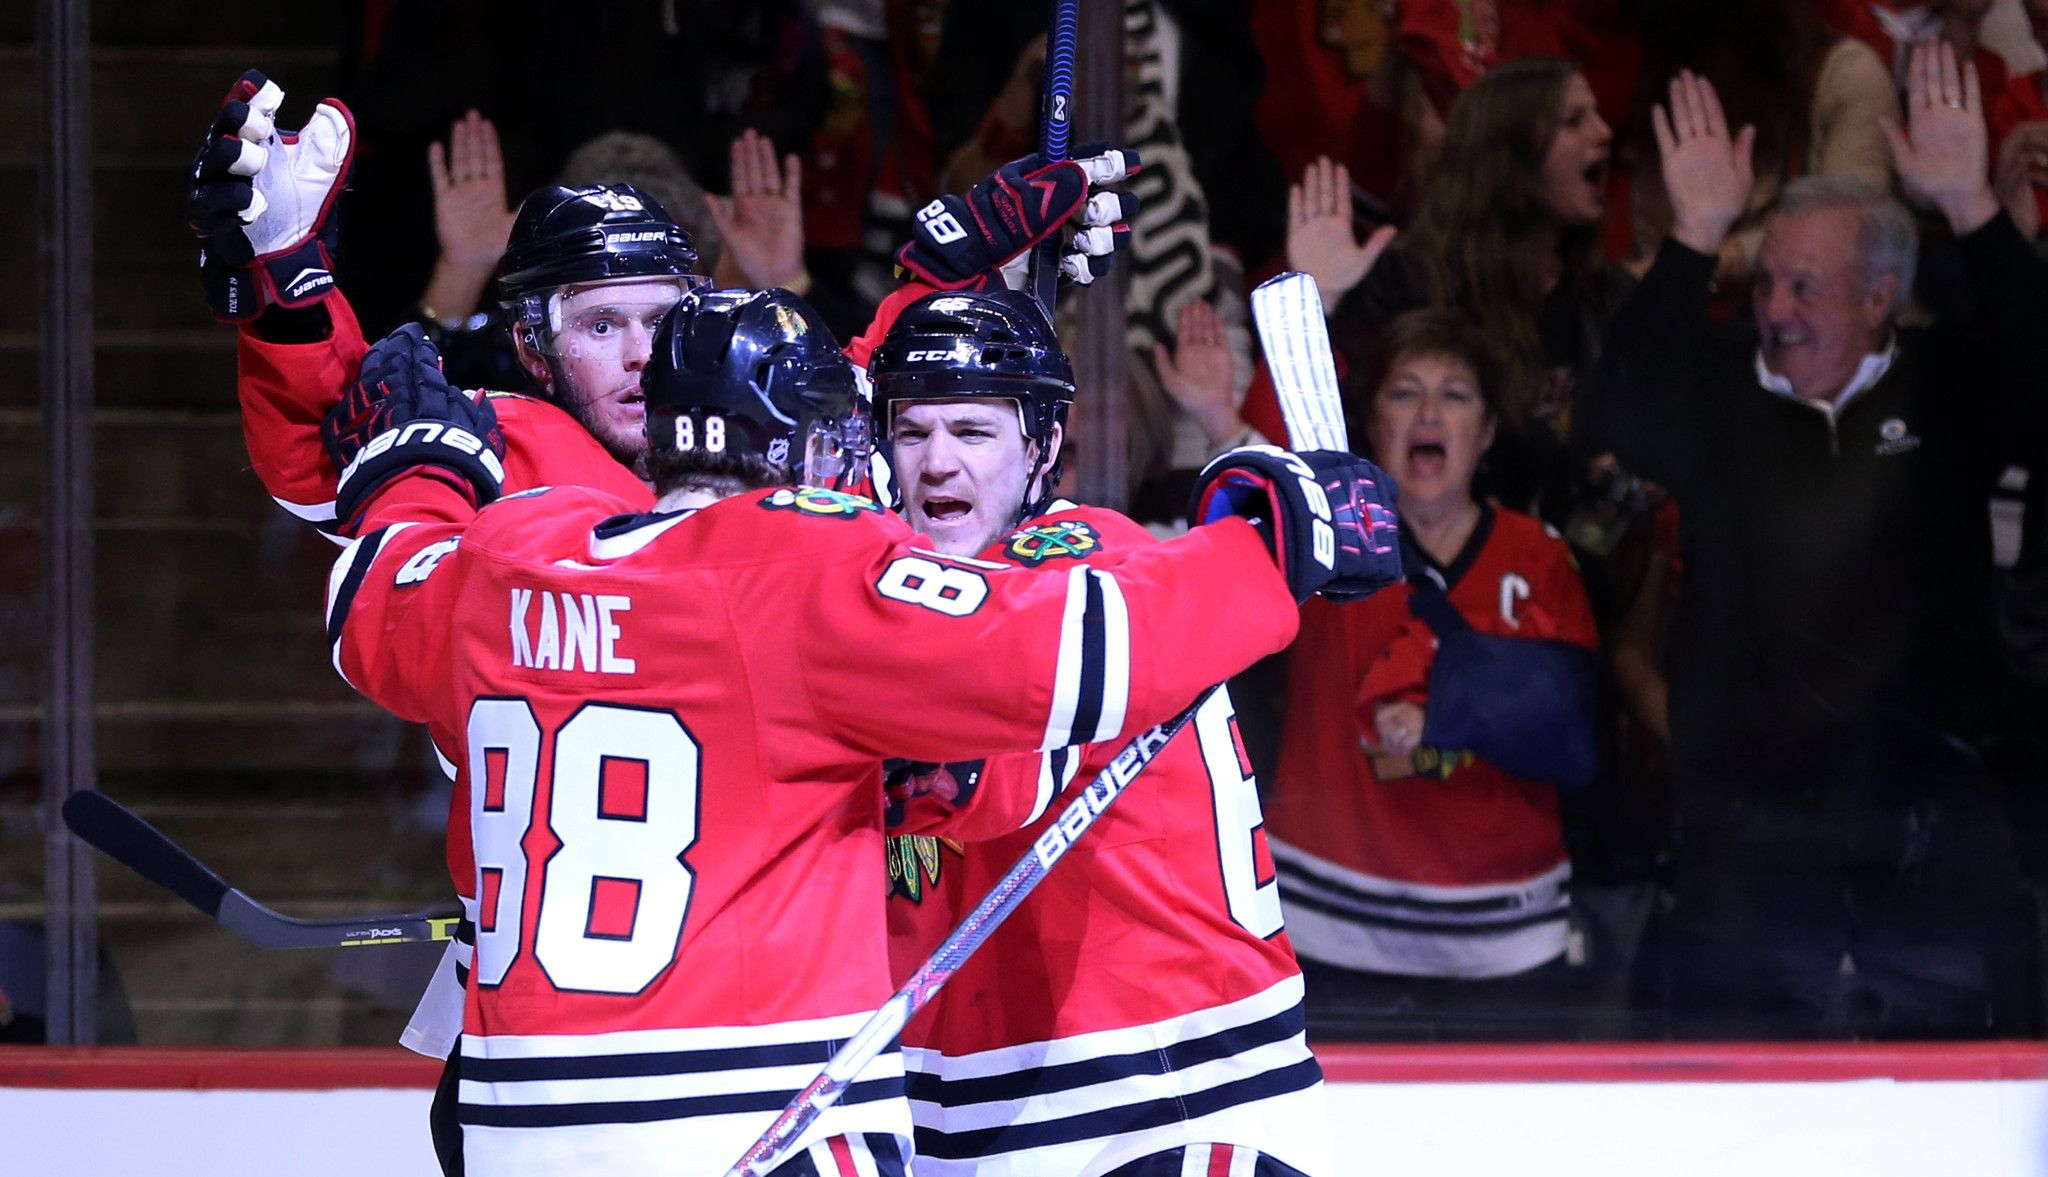 Blackhawks even series with 6-3 victory over the Blues - Chicago Tribune